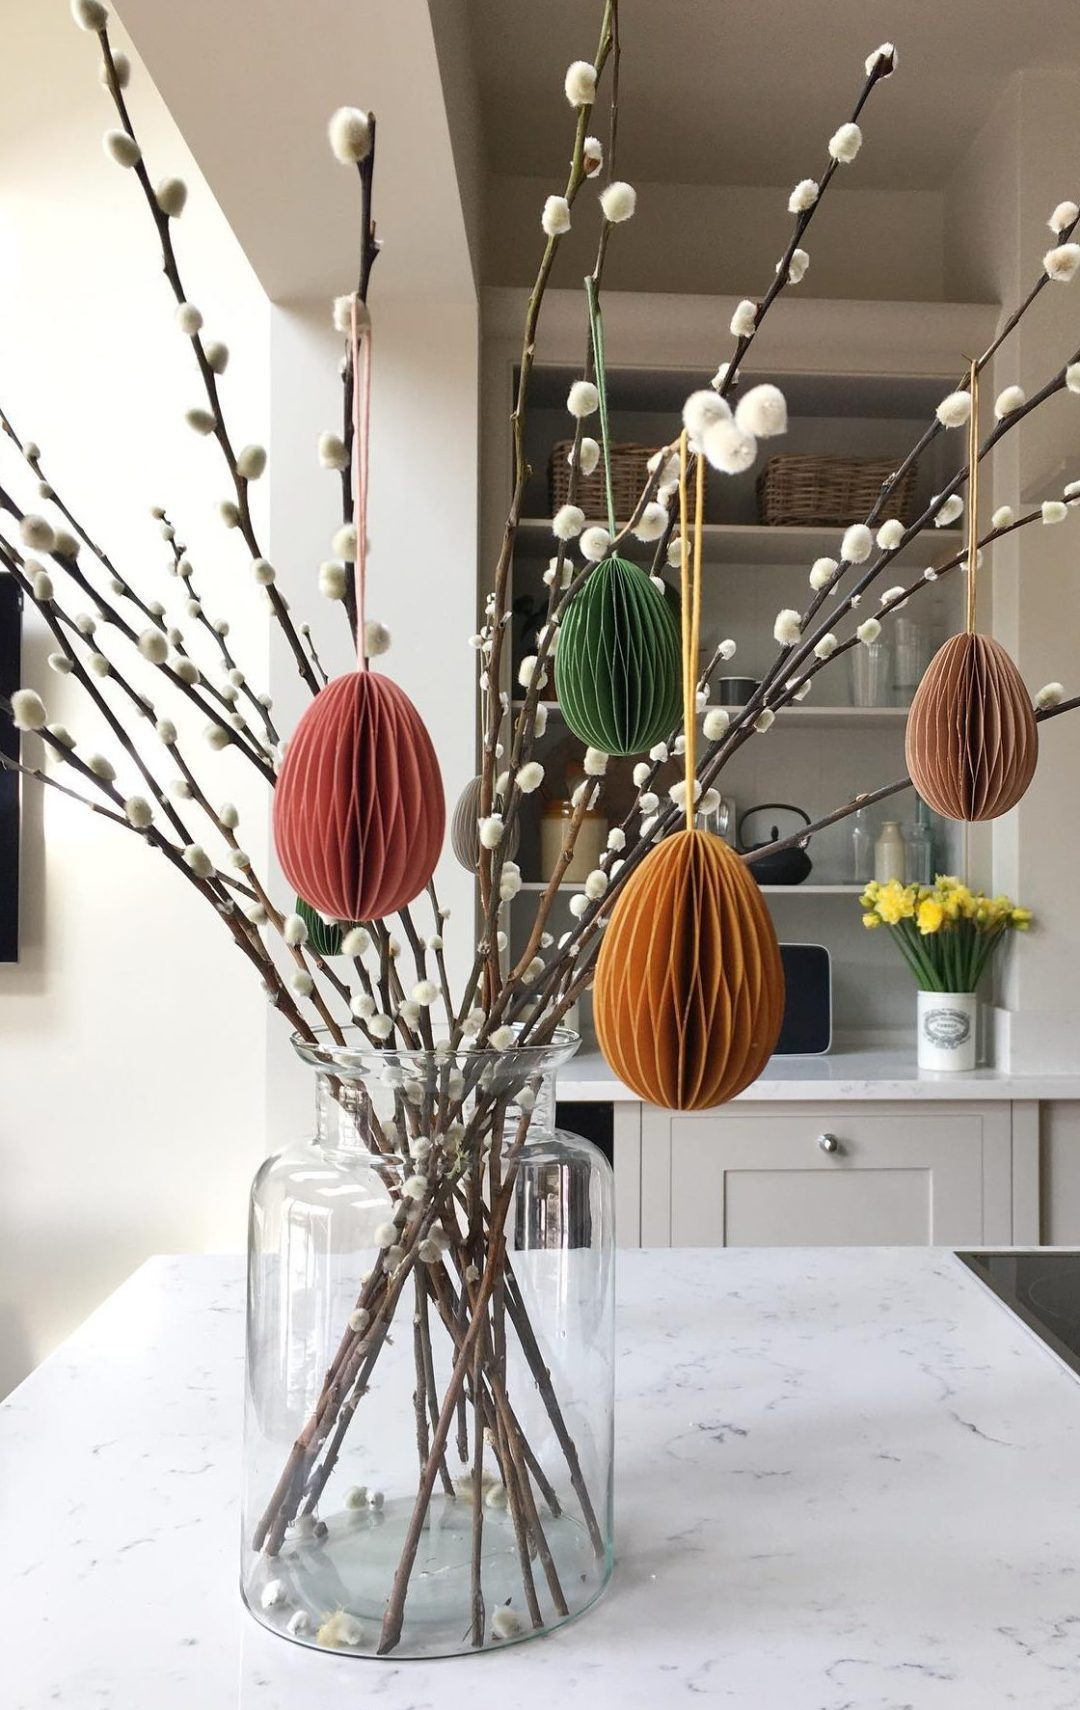 Elegant pussy willow stems with Easter tree decorations